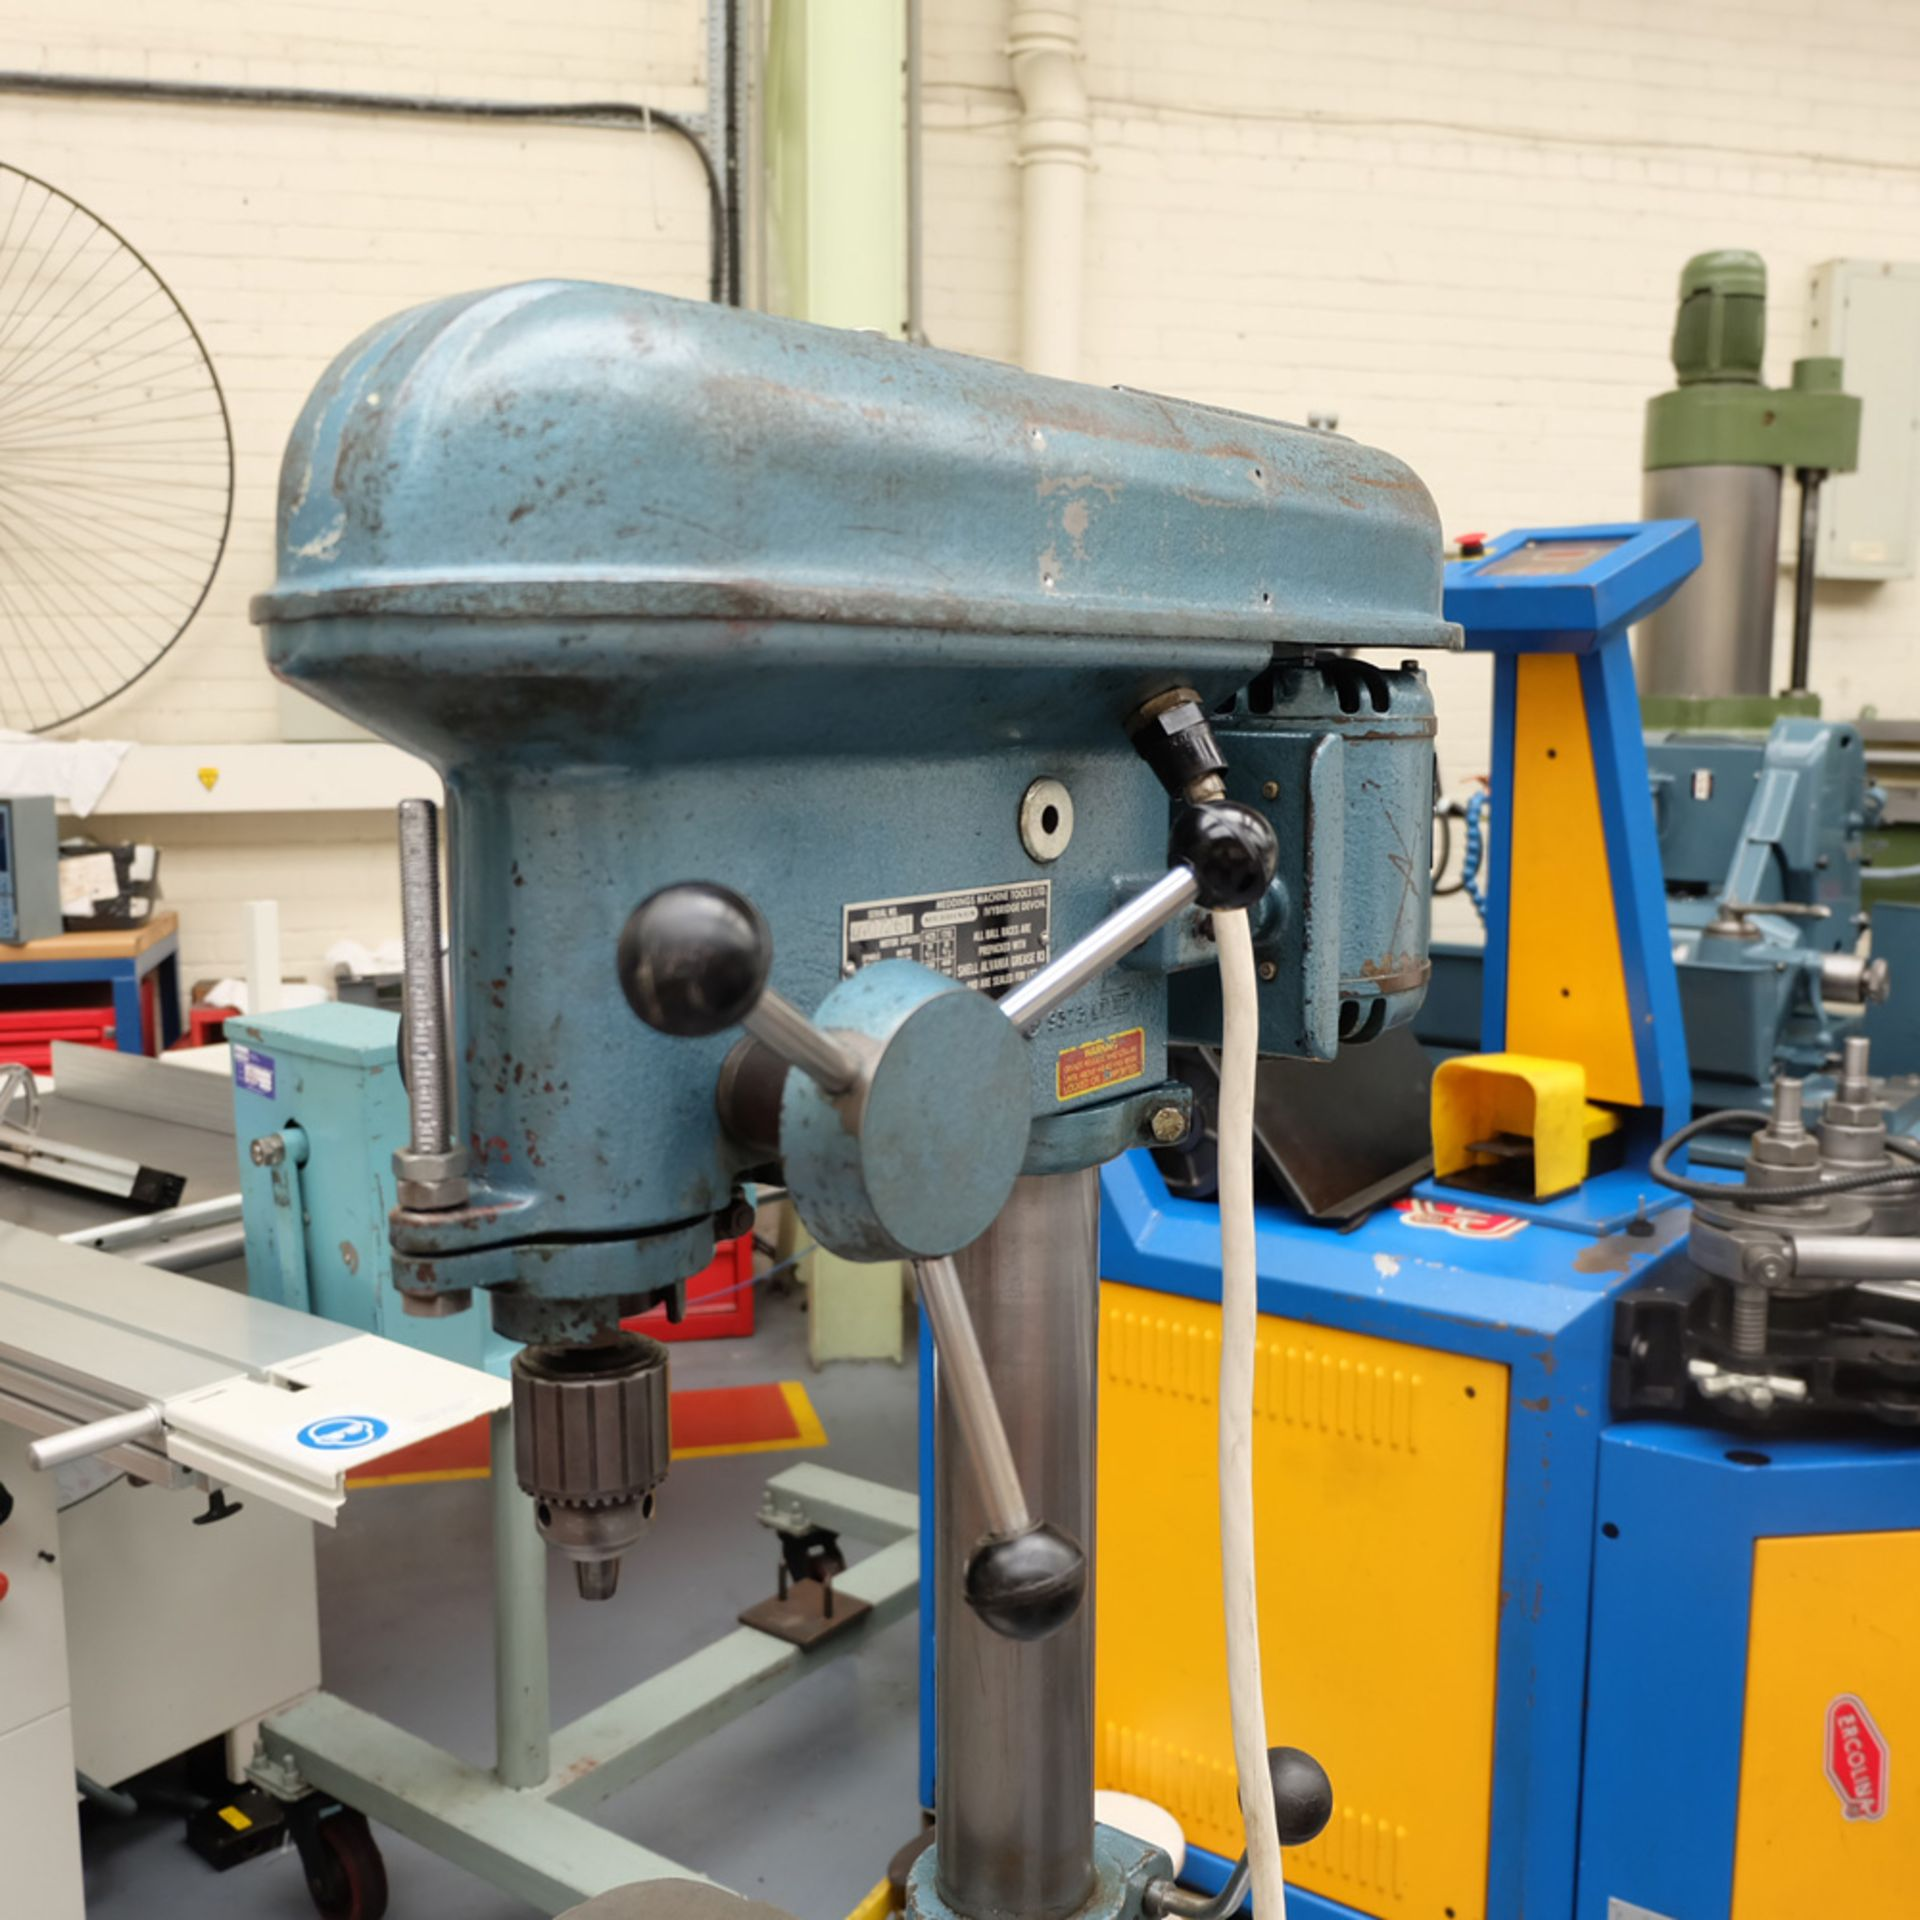 "Meddings LF1 Pillar Drill. Capacity 1/2"". 5 Speeds 500 - 4000rpm. - Image 2 of 6"